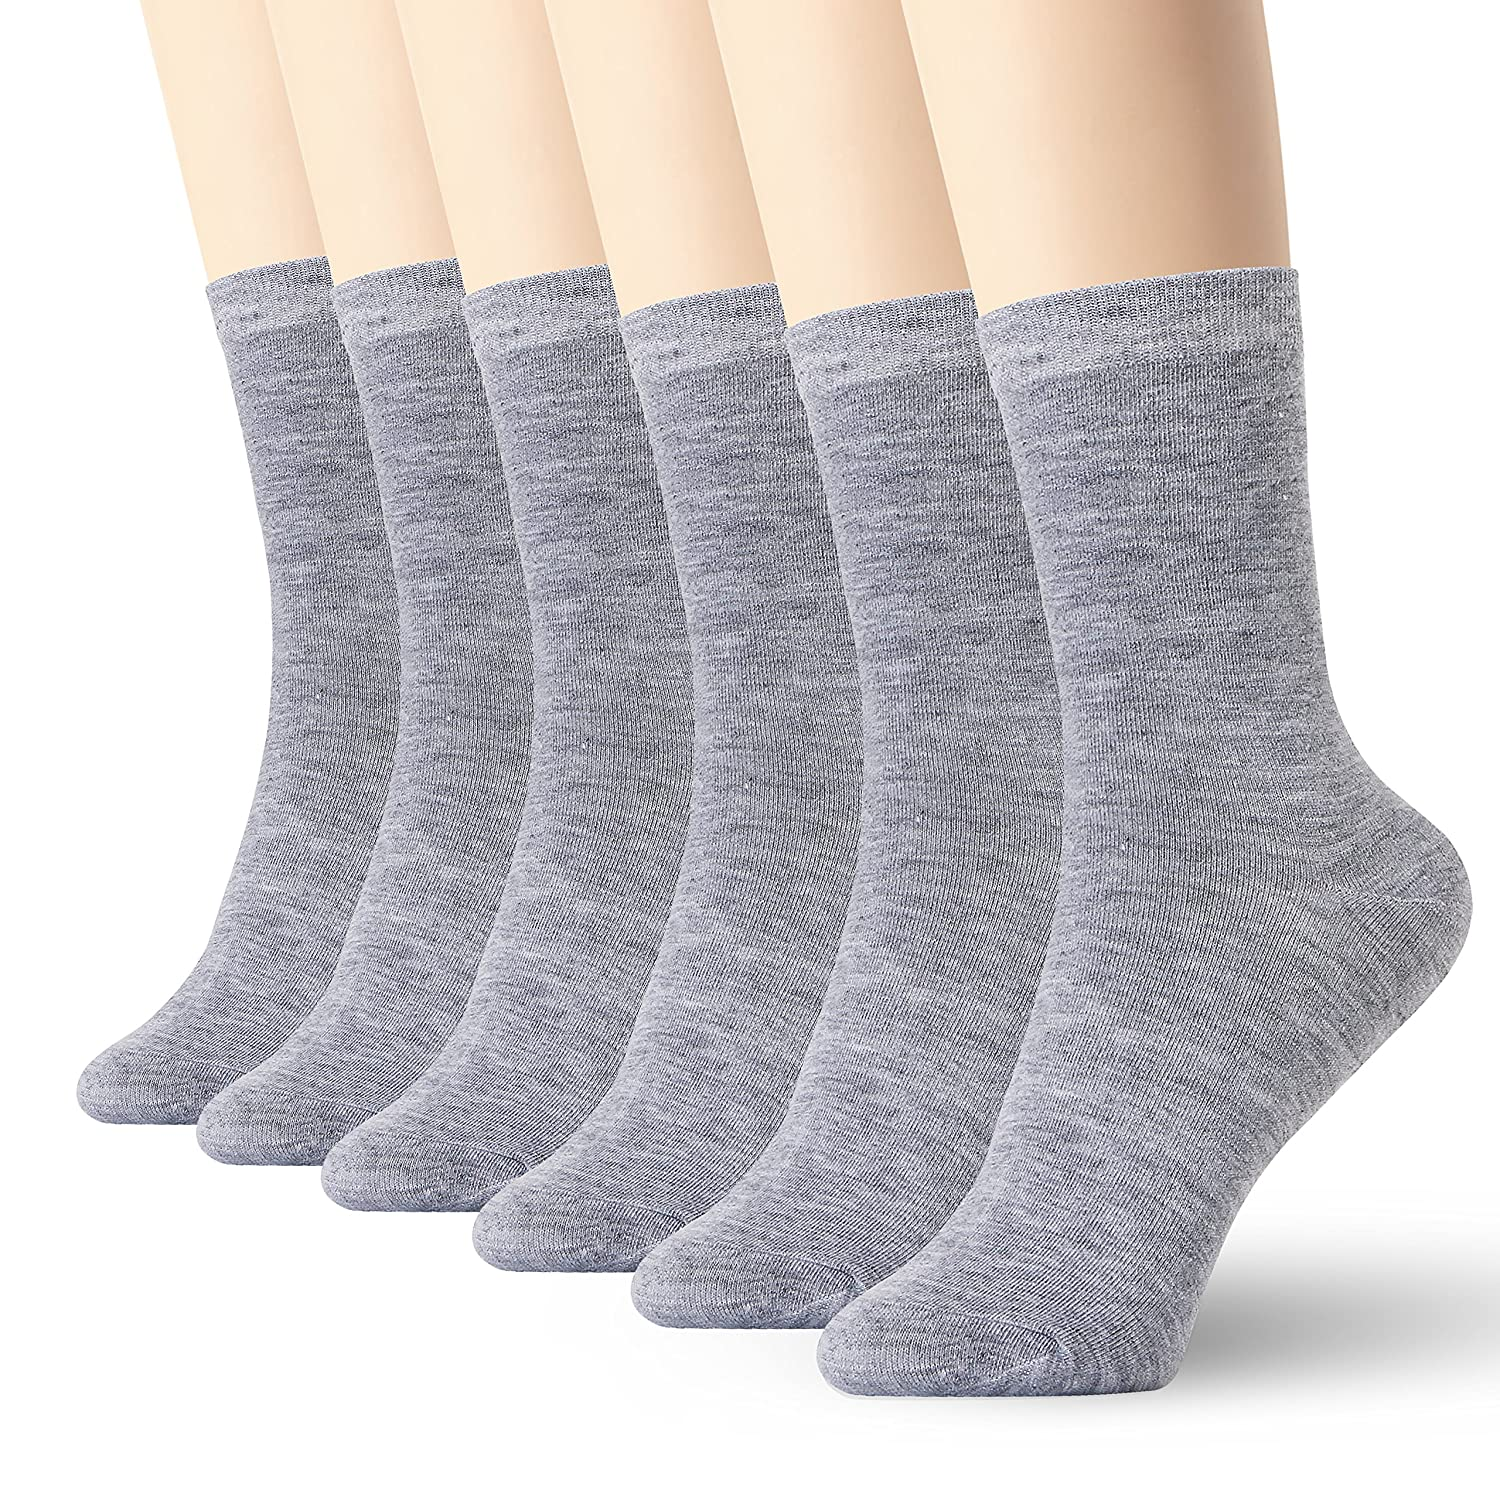 Womens Thin Cotton Socks High Ankle 6 Pack SBB-095